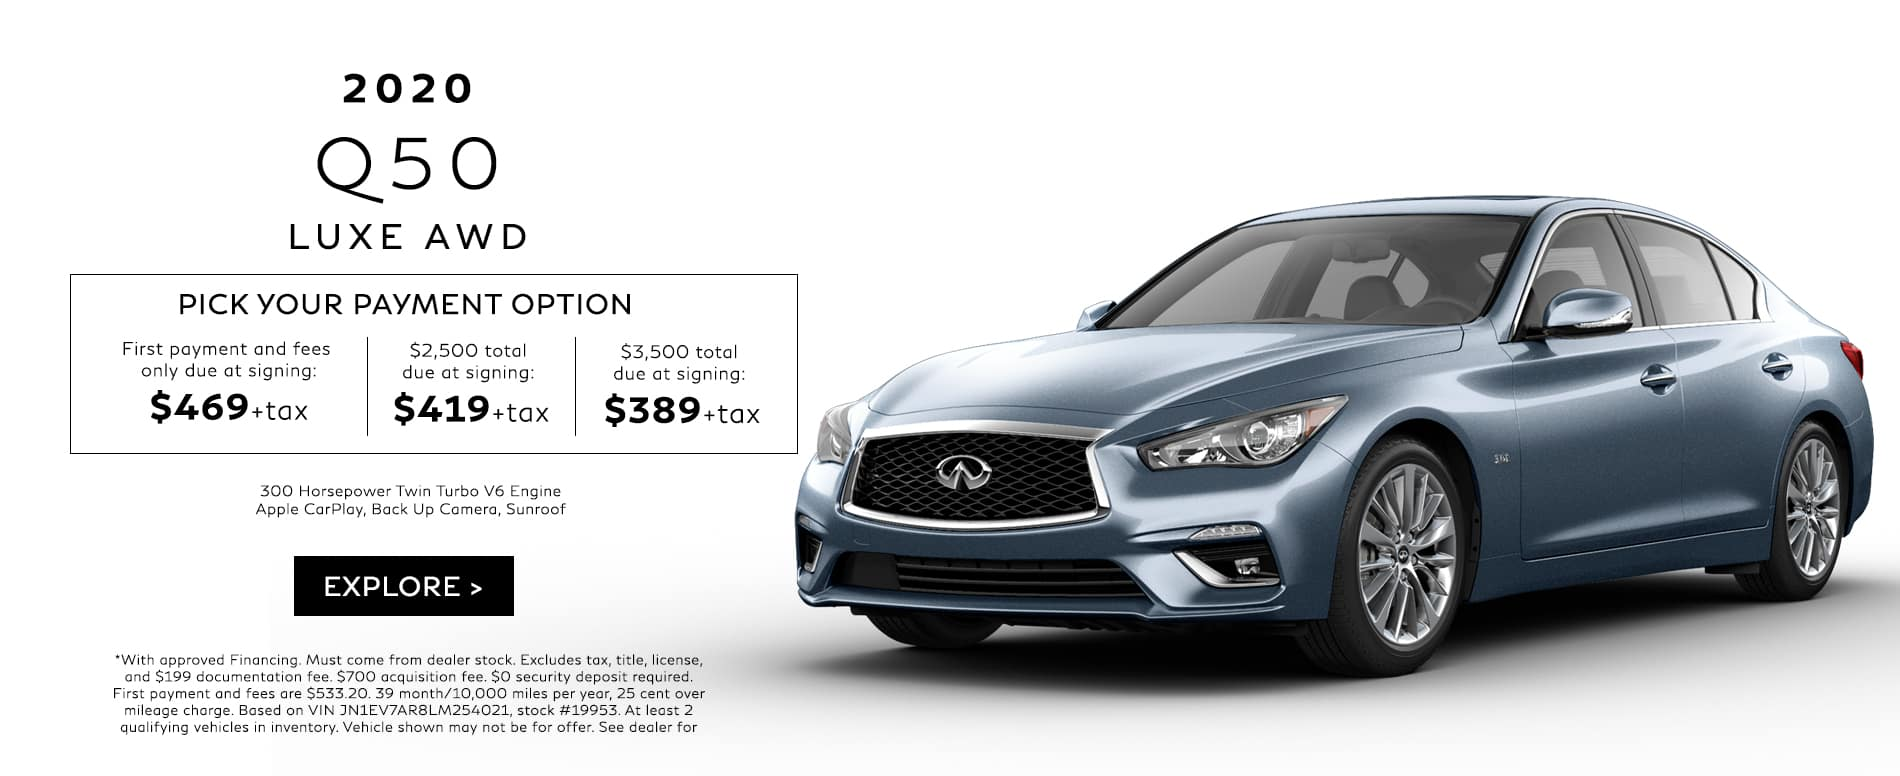 Q50 Lease Offer